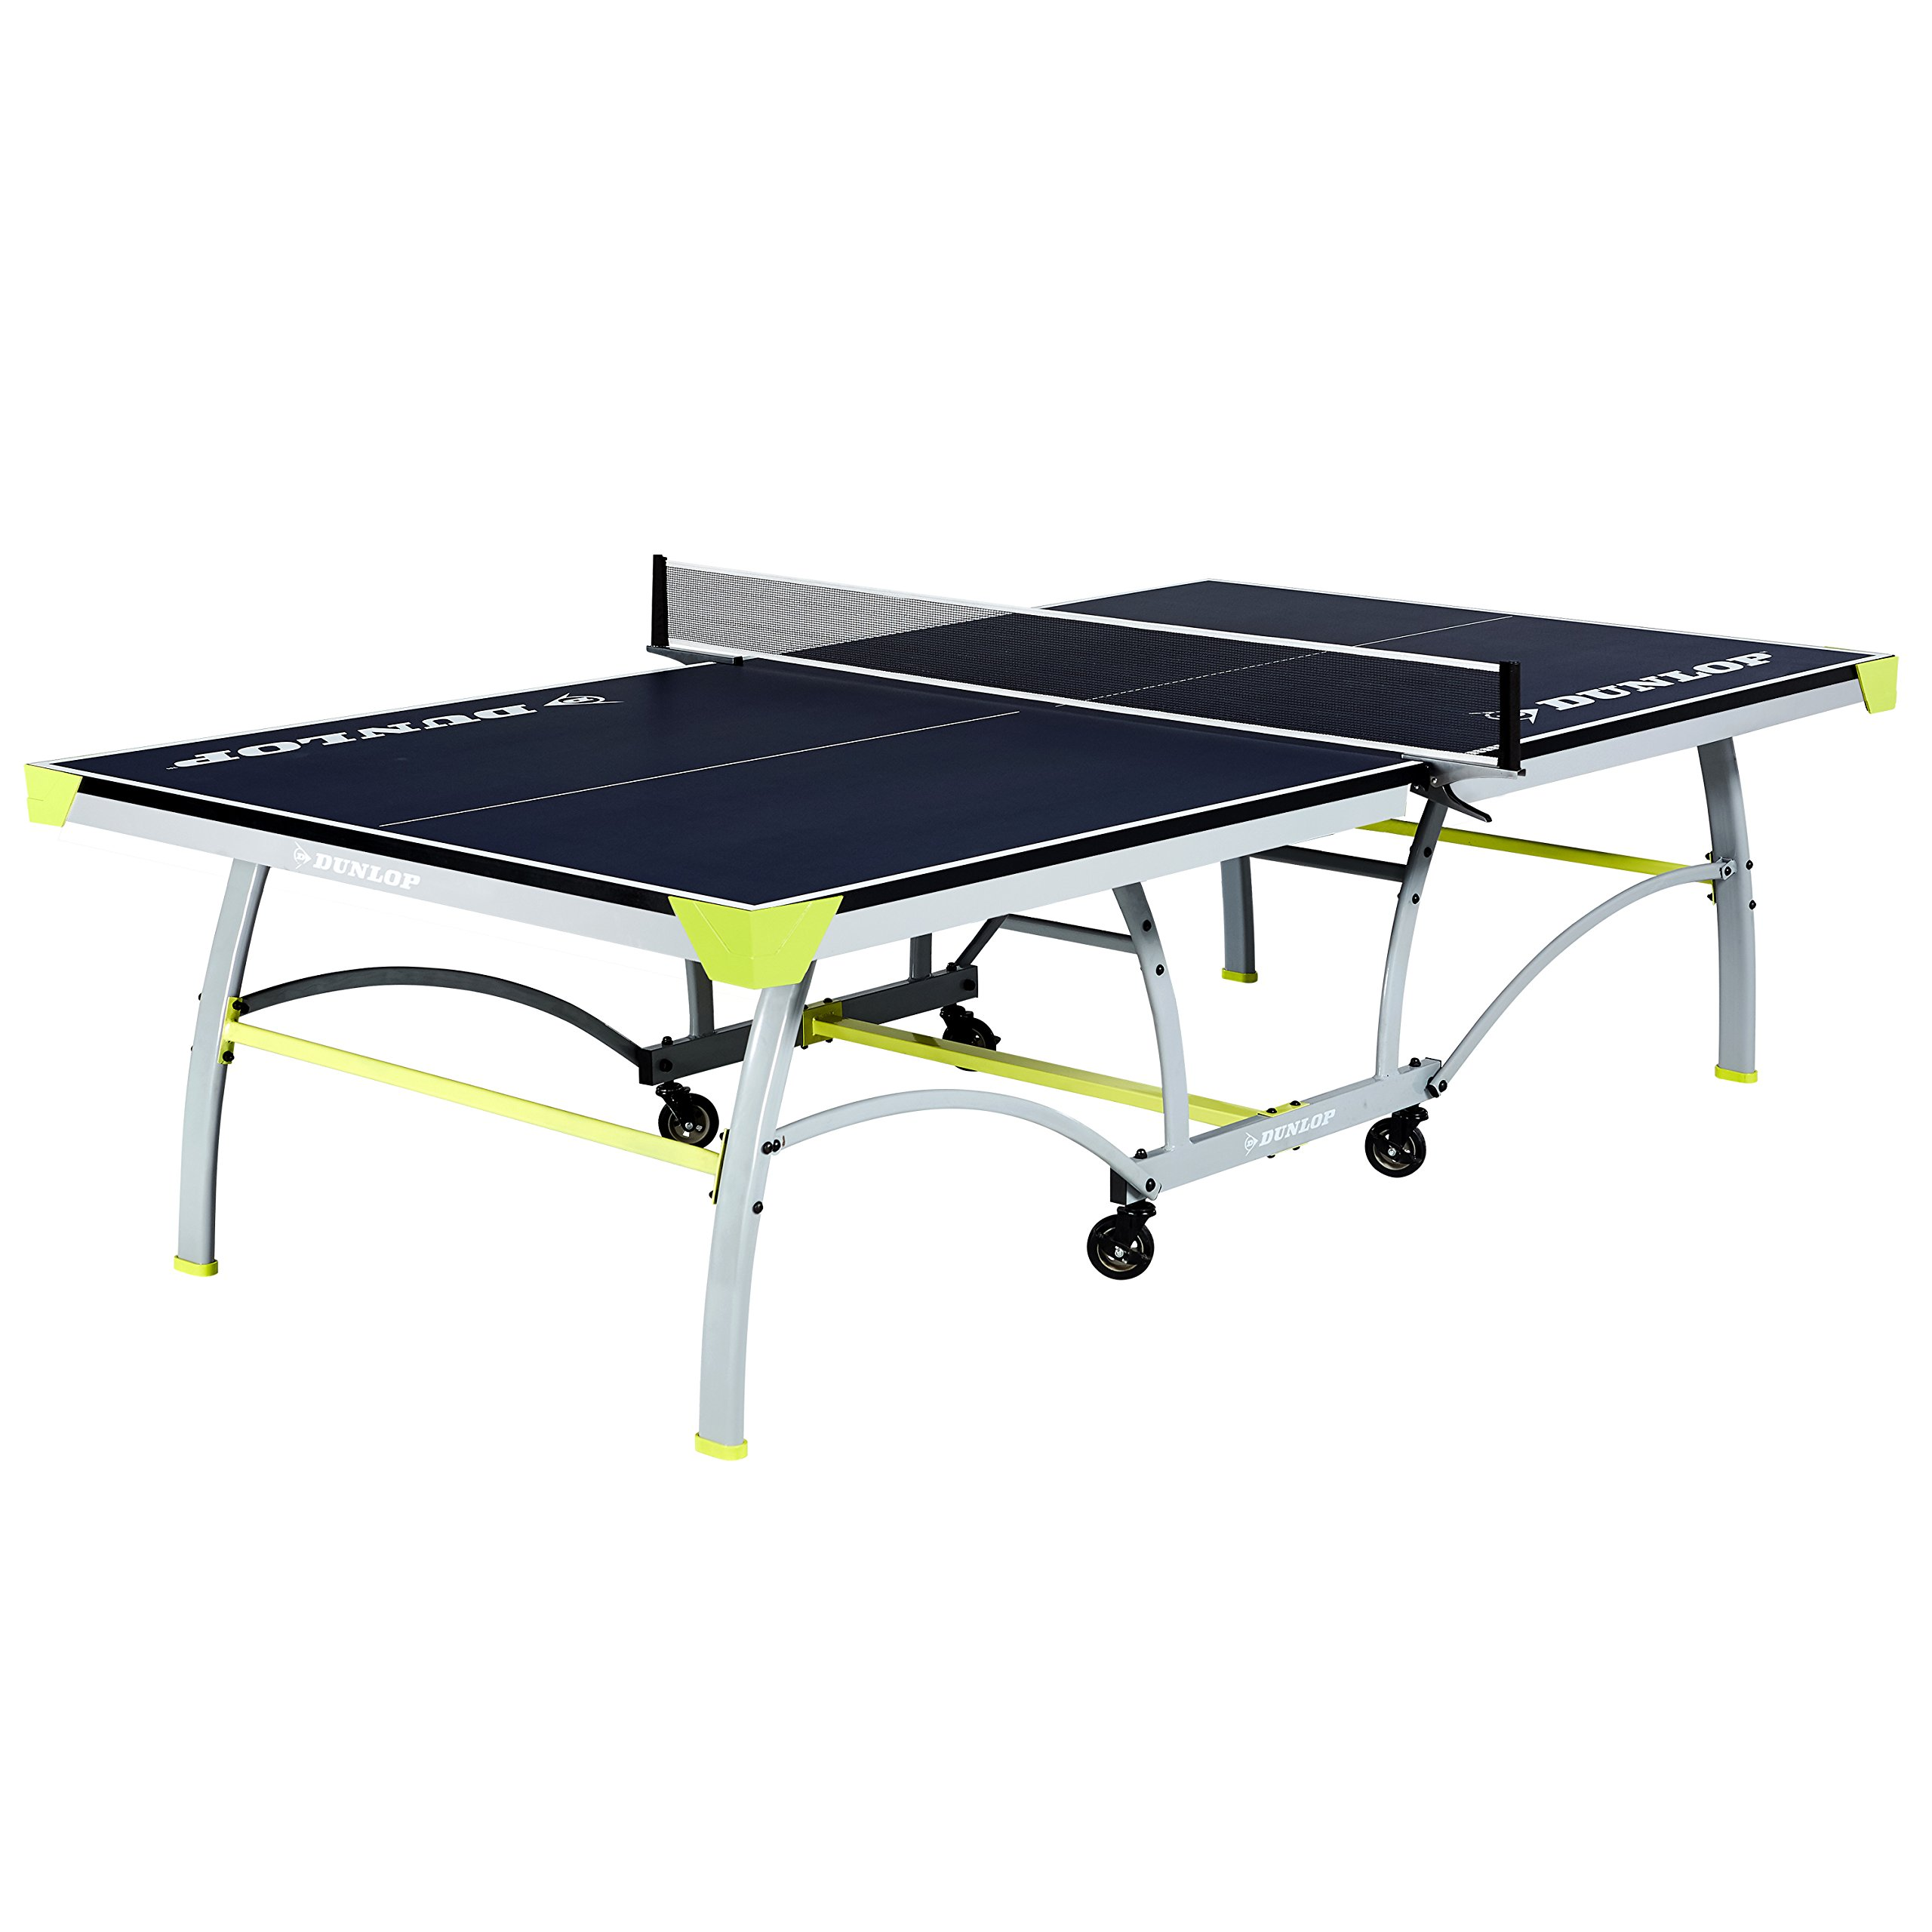 DUNLOP TTT218_117D Official Table Tennis Table, Blue by Dunlop